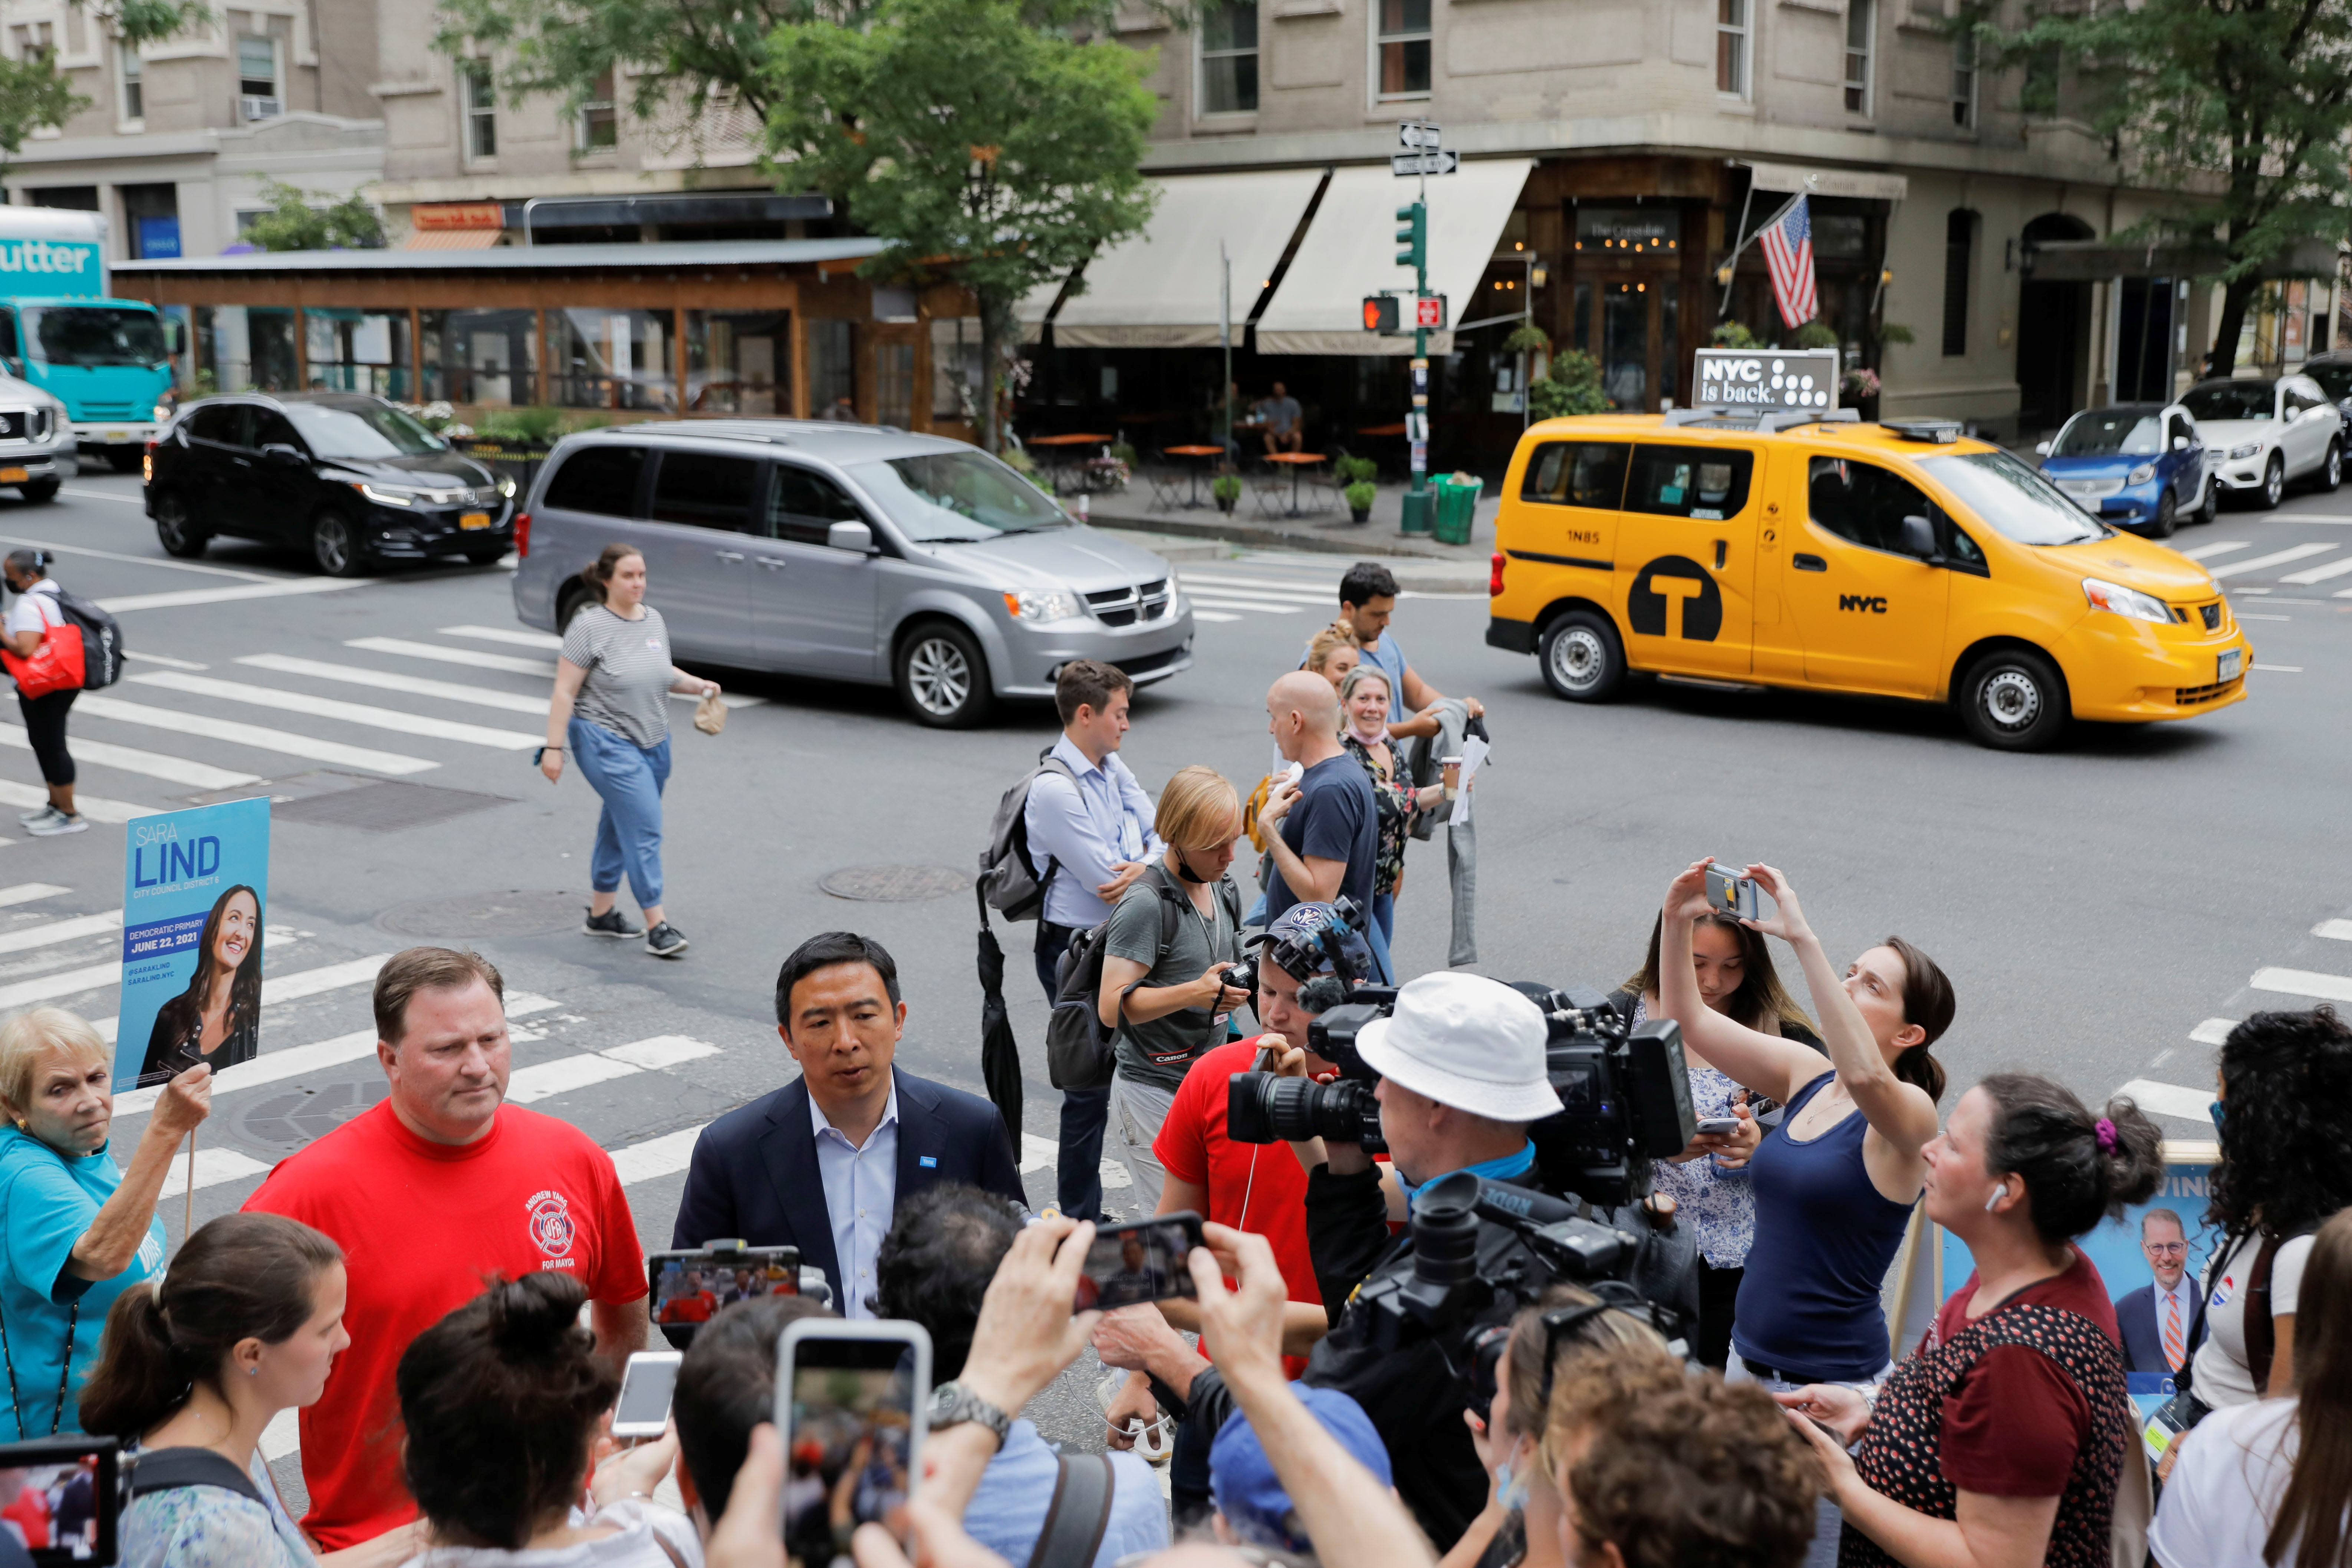 Democratic New York City Mayoral candidate Andrew Yang speaks to the media, during the New York City primary mayoral election, in New York City, U.S., June 22, 2021. REUTERS/Andrew Kelly